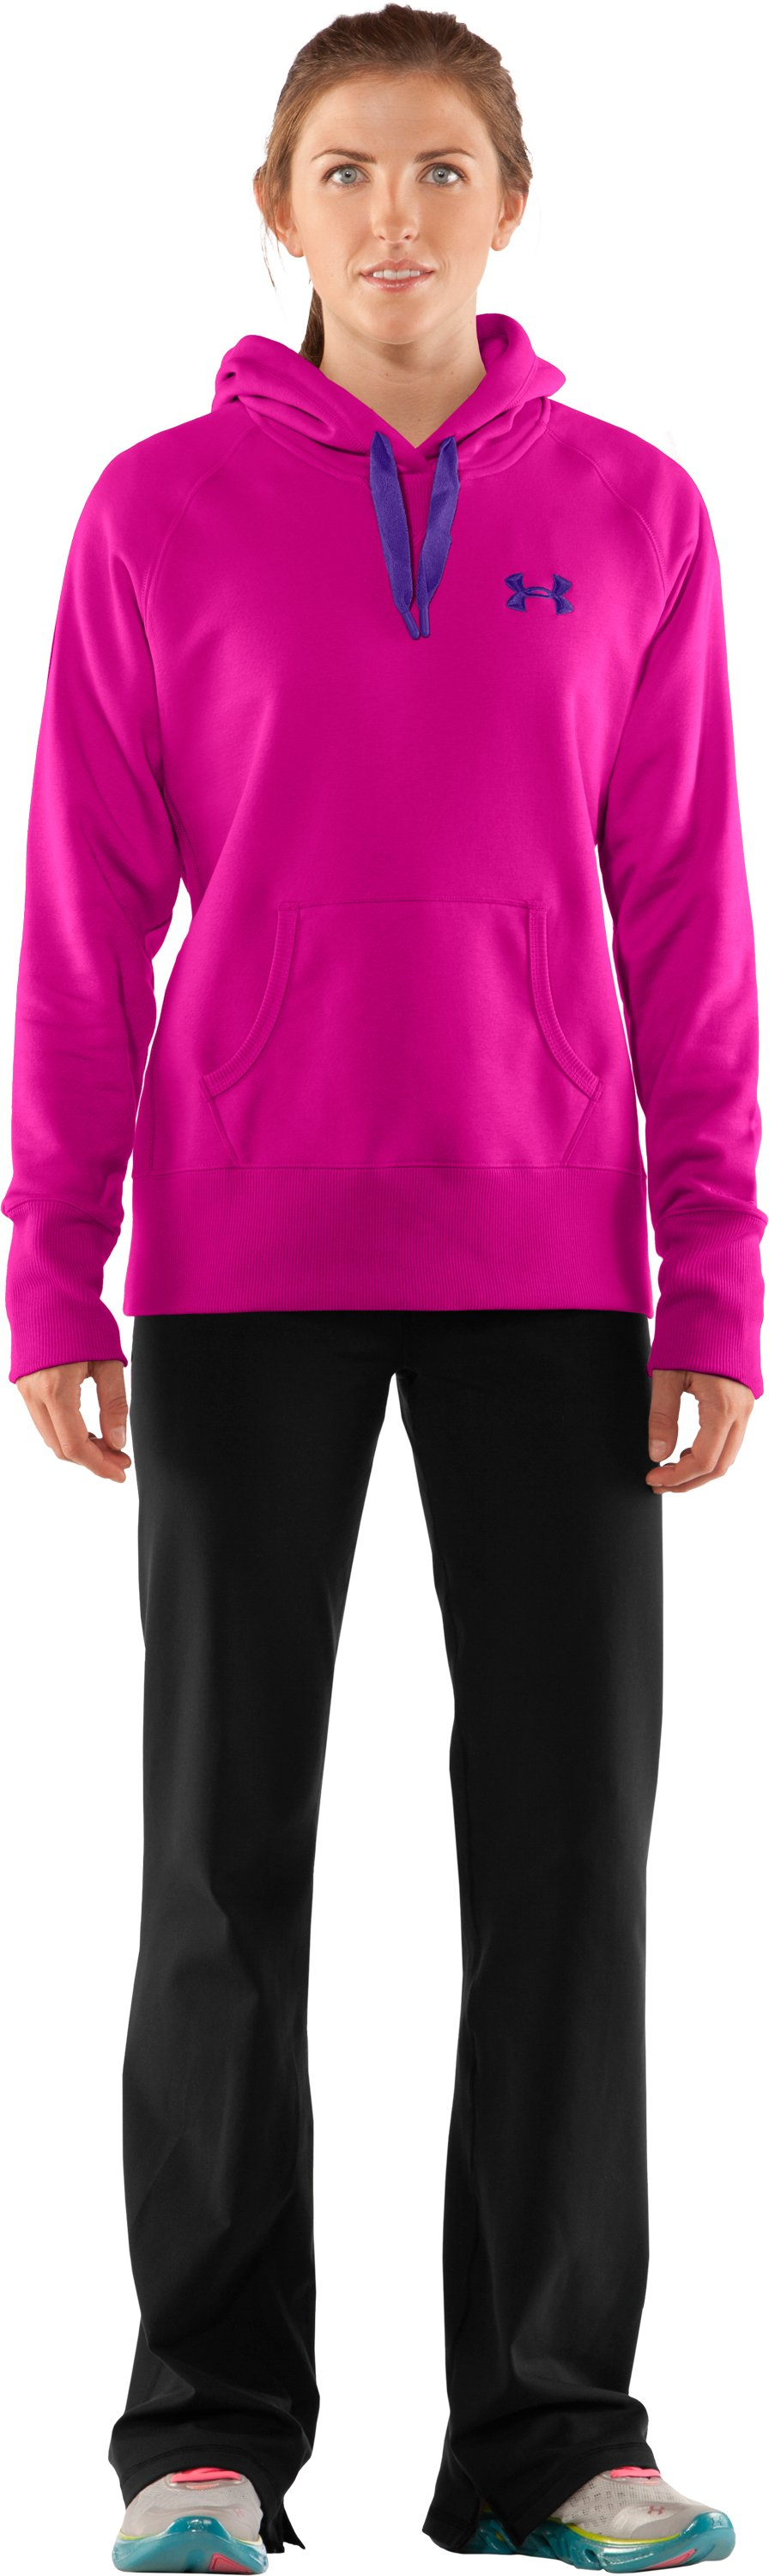 Women's Charged Cotton® Storm Hoodie, Tropic Pink, Front